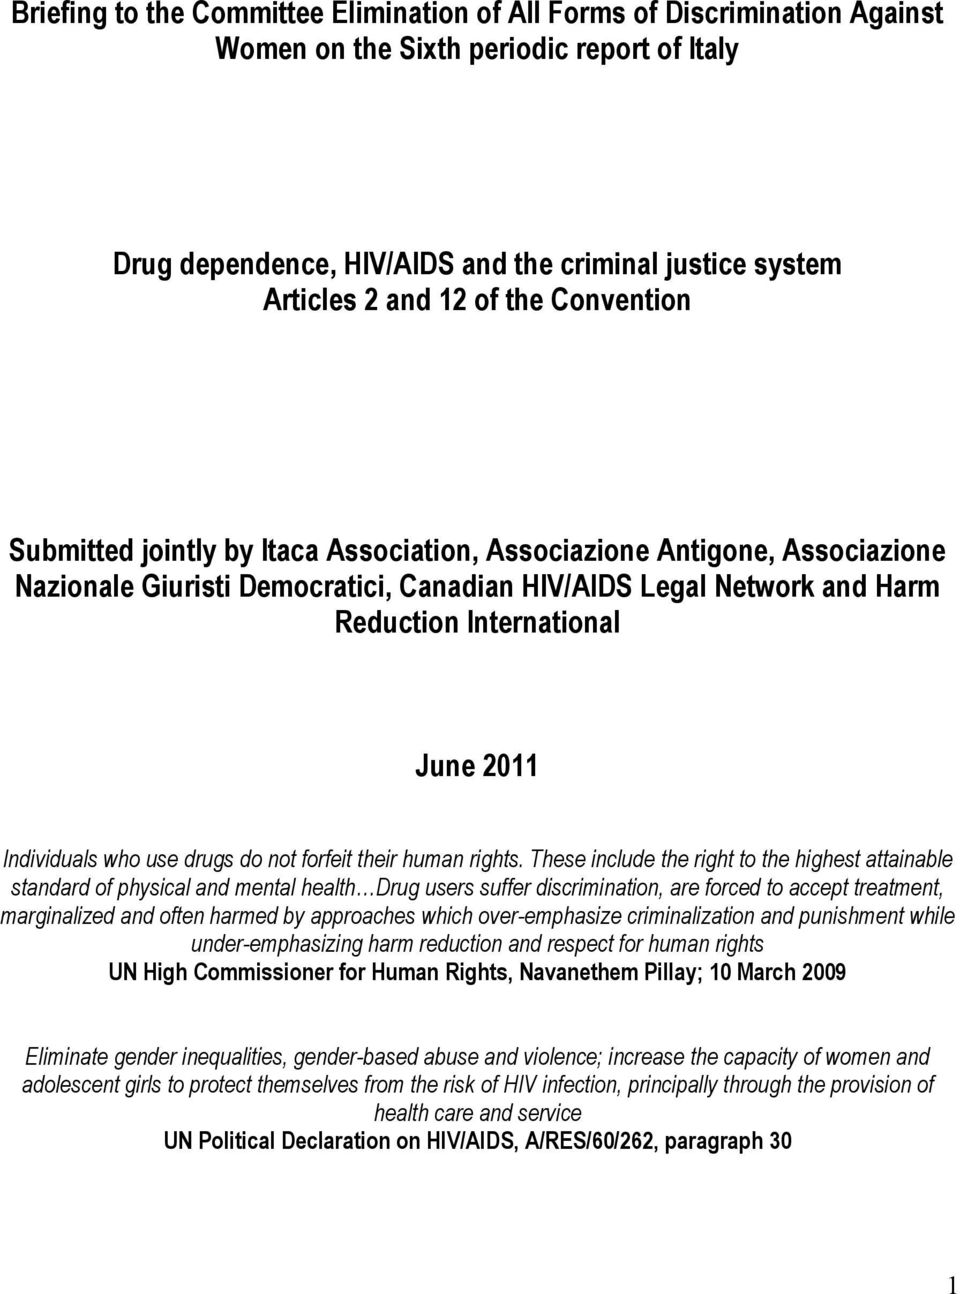 Individuals who use drugs do not forfeit their human rights.